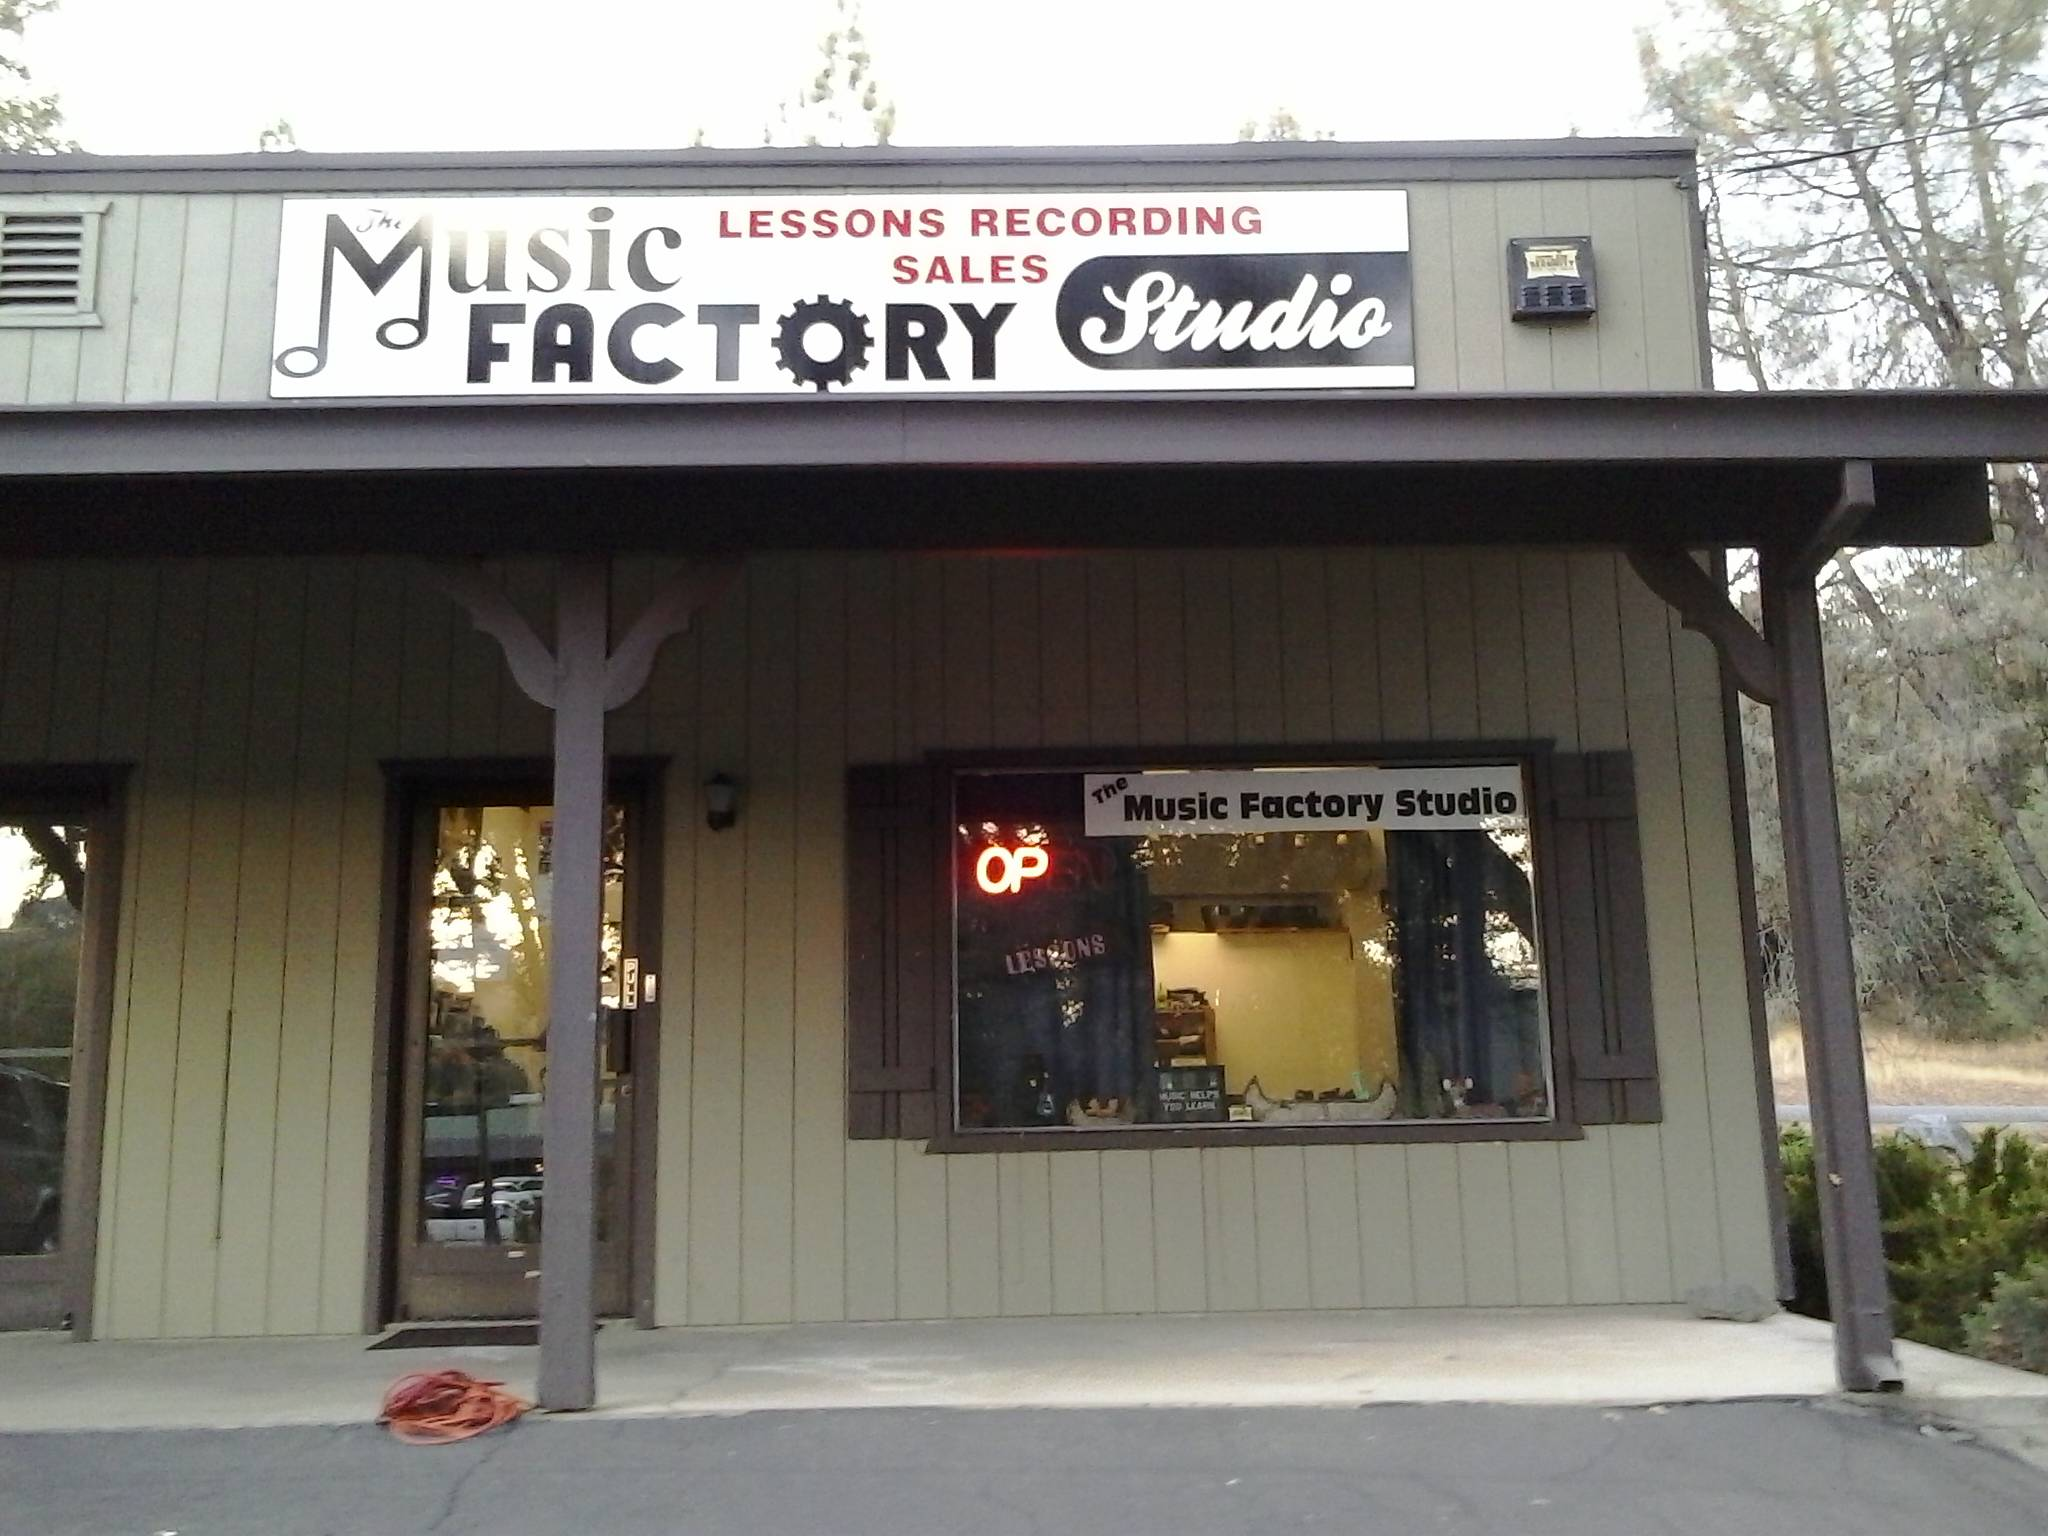 The Music Factory Studio, 20071 Highway 108, Suite C, Sonora, California, 95370